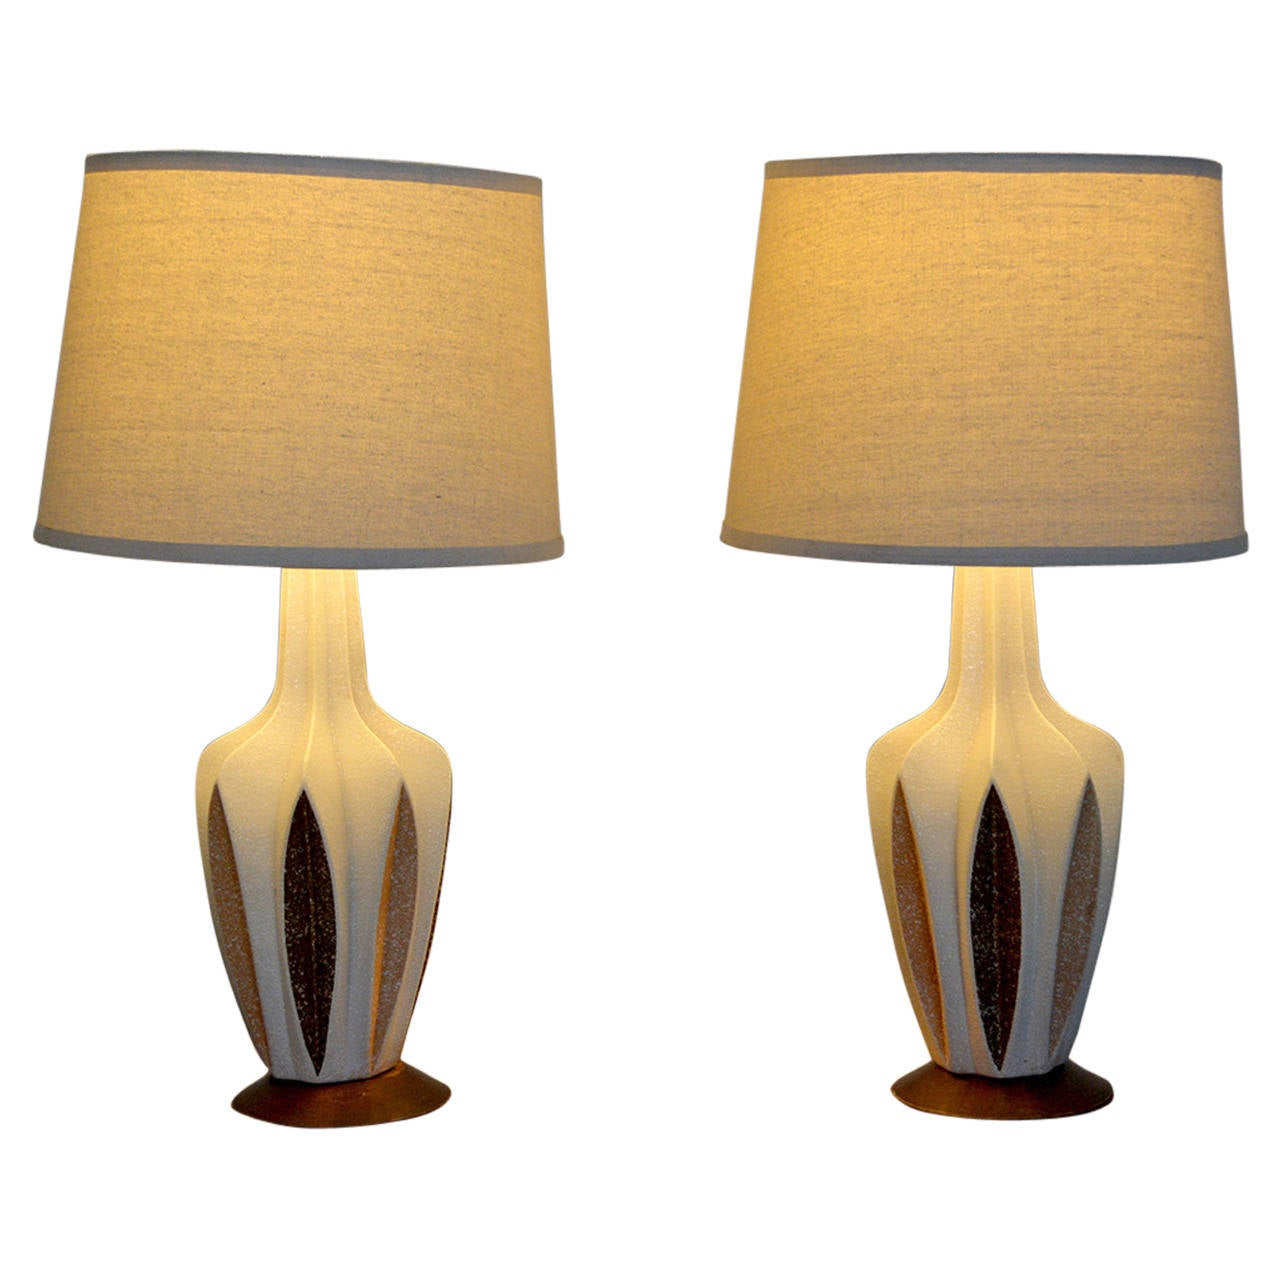 Mid century modern table lamp - Mid Century Modern Ceramic Table Lamps 1